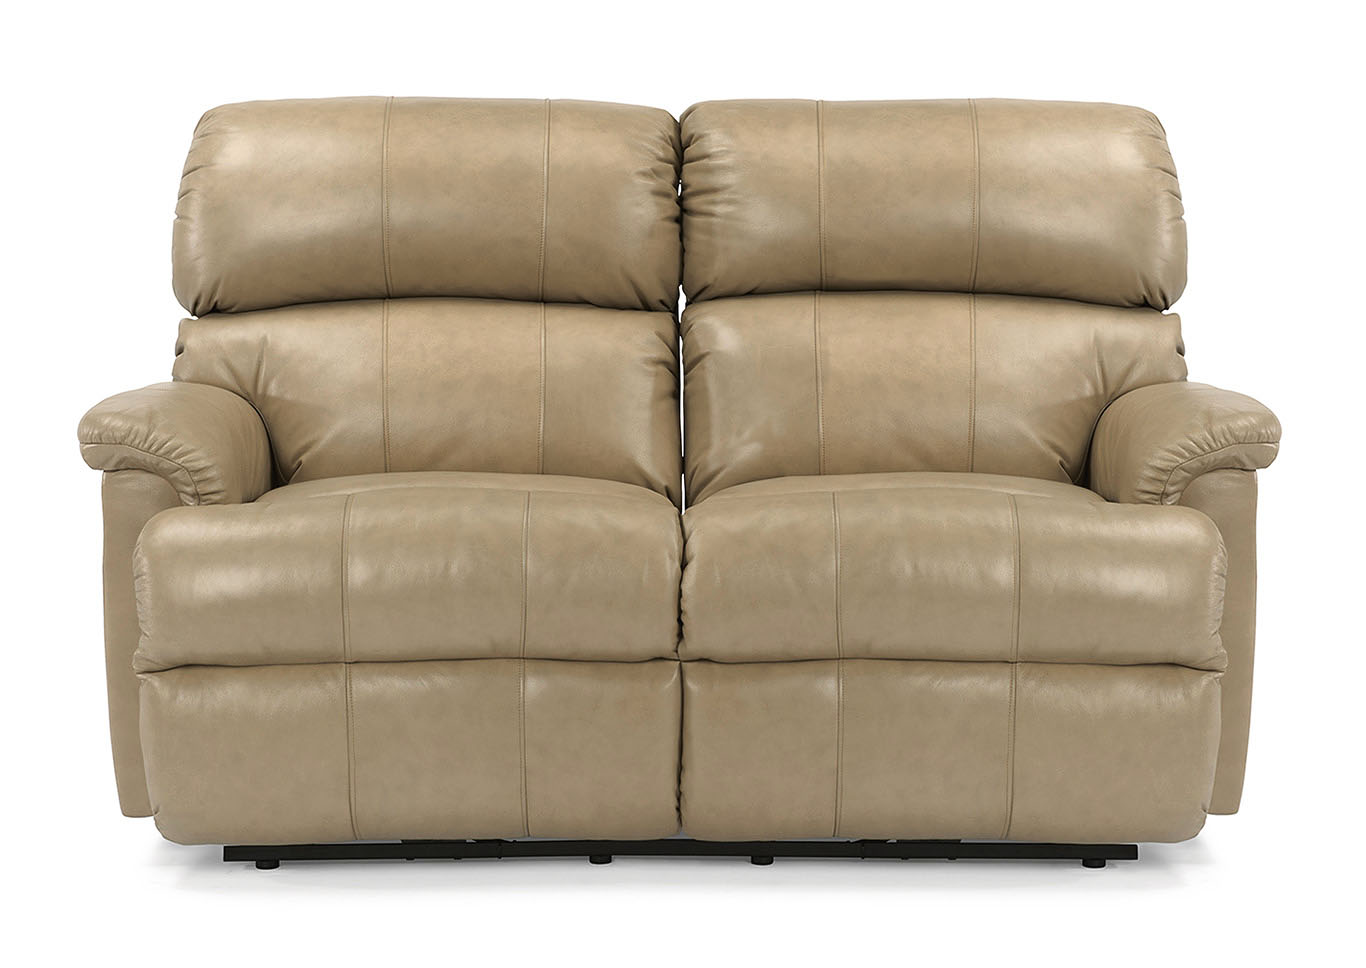 V Watts Furniture Chicago Leather Reclining Loveseat